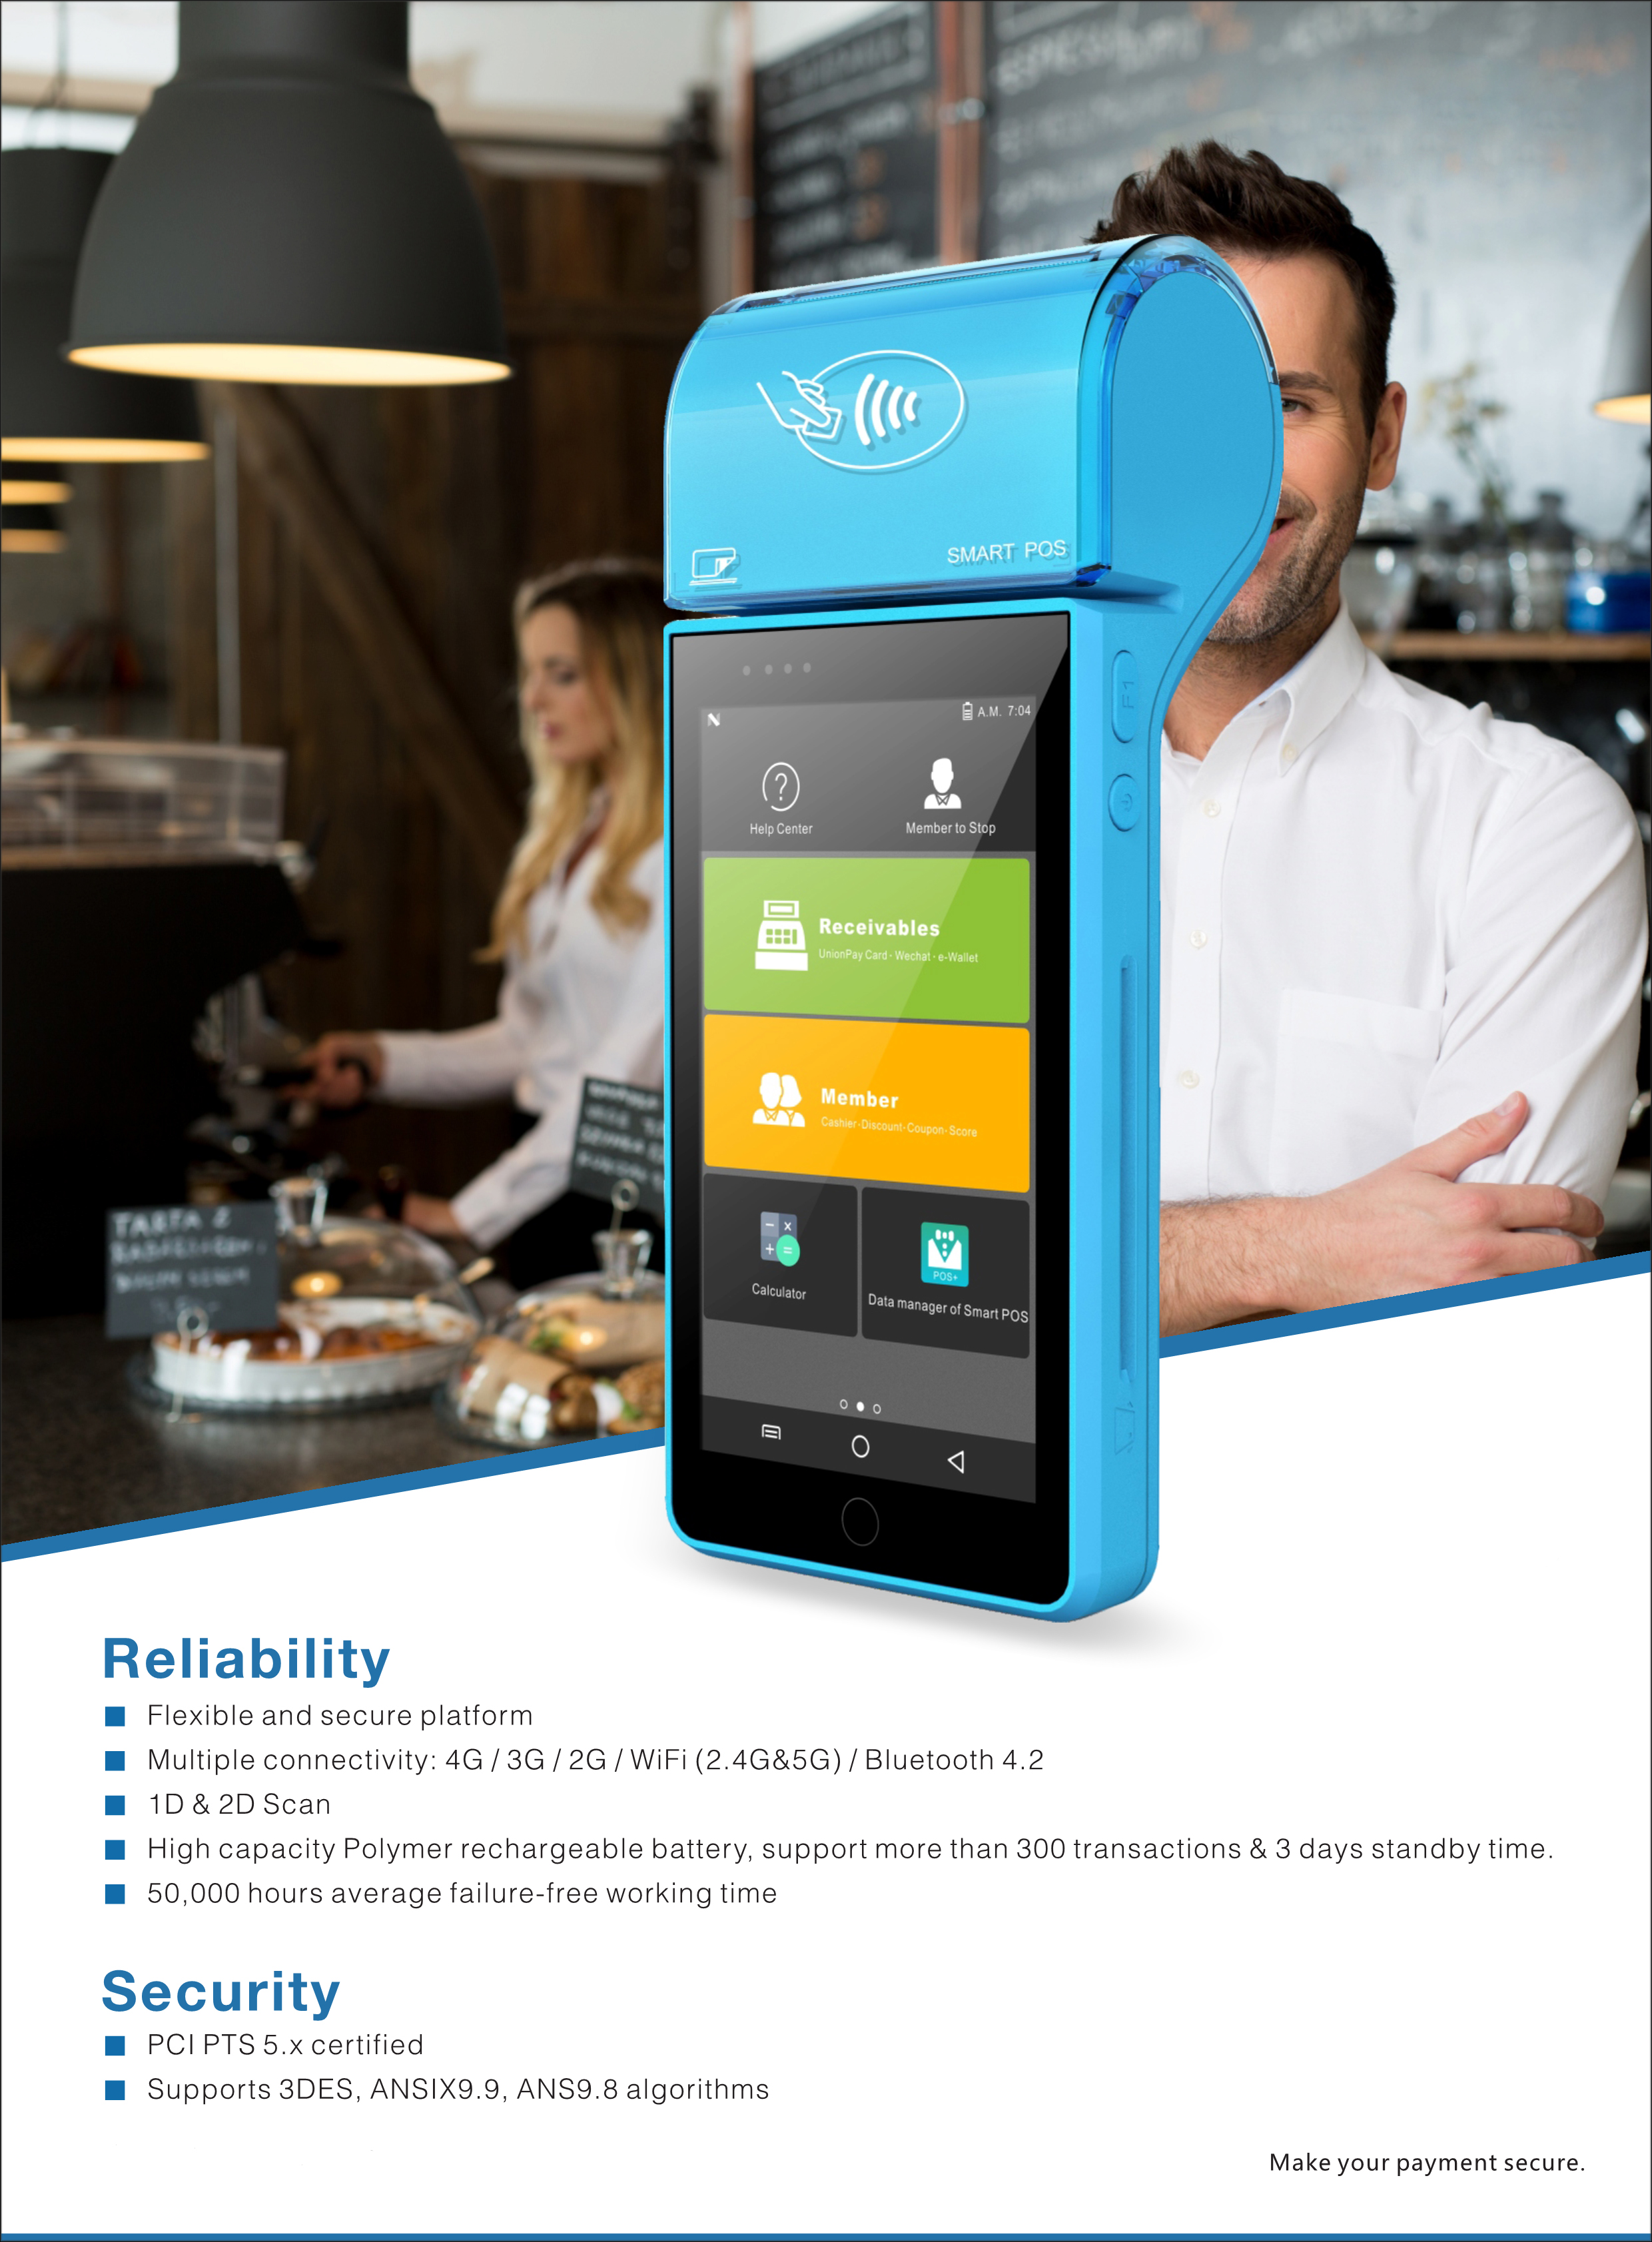 All in one slim smart handheld android pos terminal with printer and card readers